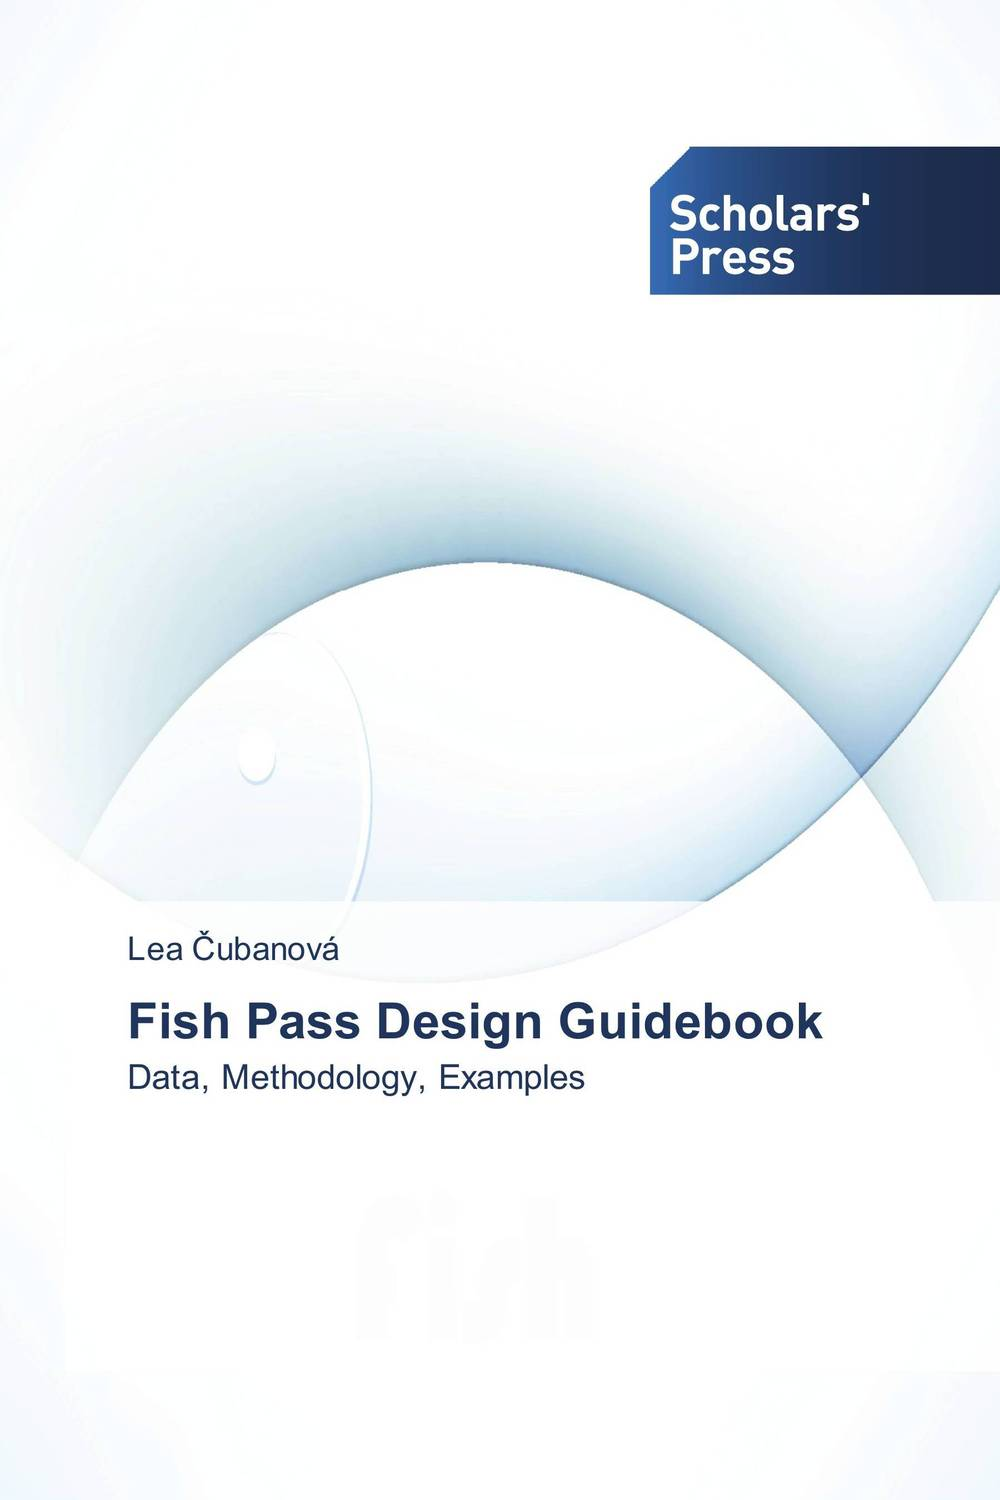 Fish Pass Design Guidebook